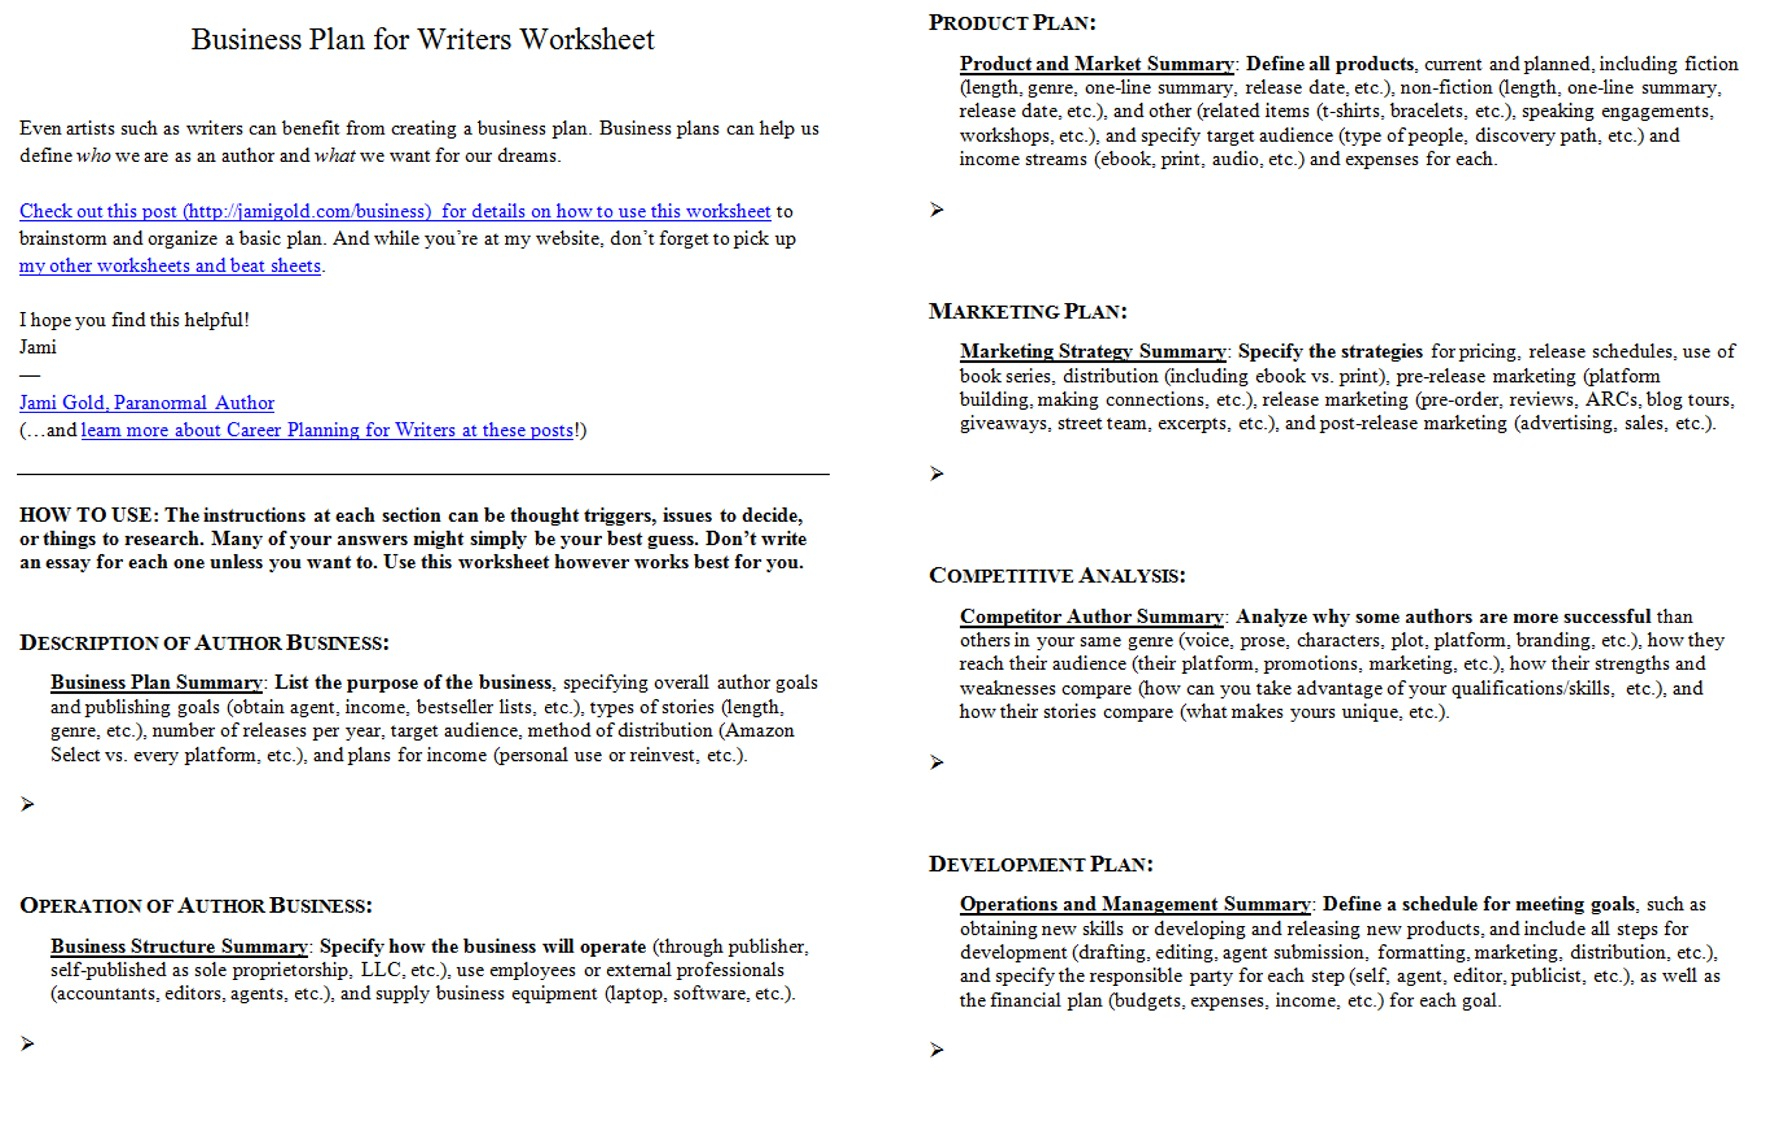 Weirdmailus  Wonderful Worksheets For Writers  Jami Gold Paranormal Author With Hot Screen Shot Of Both Pages Of The Business Plan For Writers Worksheet With Awesome Verb And Noun Worksheets Also Matching Worksheet Creator In Addition Multiplying By  Worksheets And Reading Comprehension Worksheets Grade  As Well As Too Many Tamales Worksheets Additionally Create Your Own Multiplication Worksheet From Jamigoldcom With Weirdmailus  Hot Worksheets For Writers  Jami Gold Paranormal Author With Awesome Screen Shot Of Both Pages Of The Business Plan For Writers Worksheet And Wonderful Verb And Noun Worksheets Also Matching Worksheet Creator In Addition Multiplying By  Worksheets From Jamigoldcom